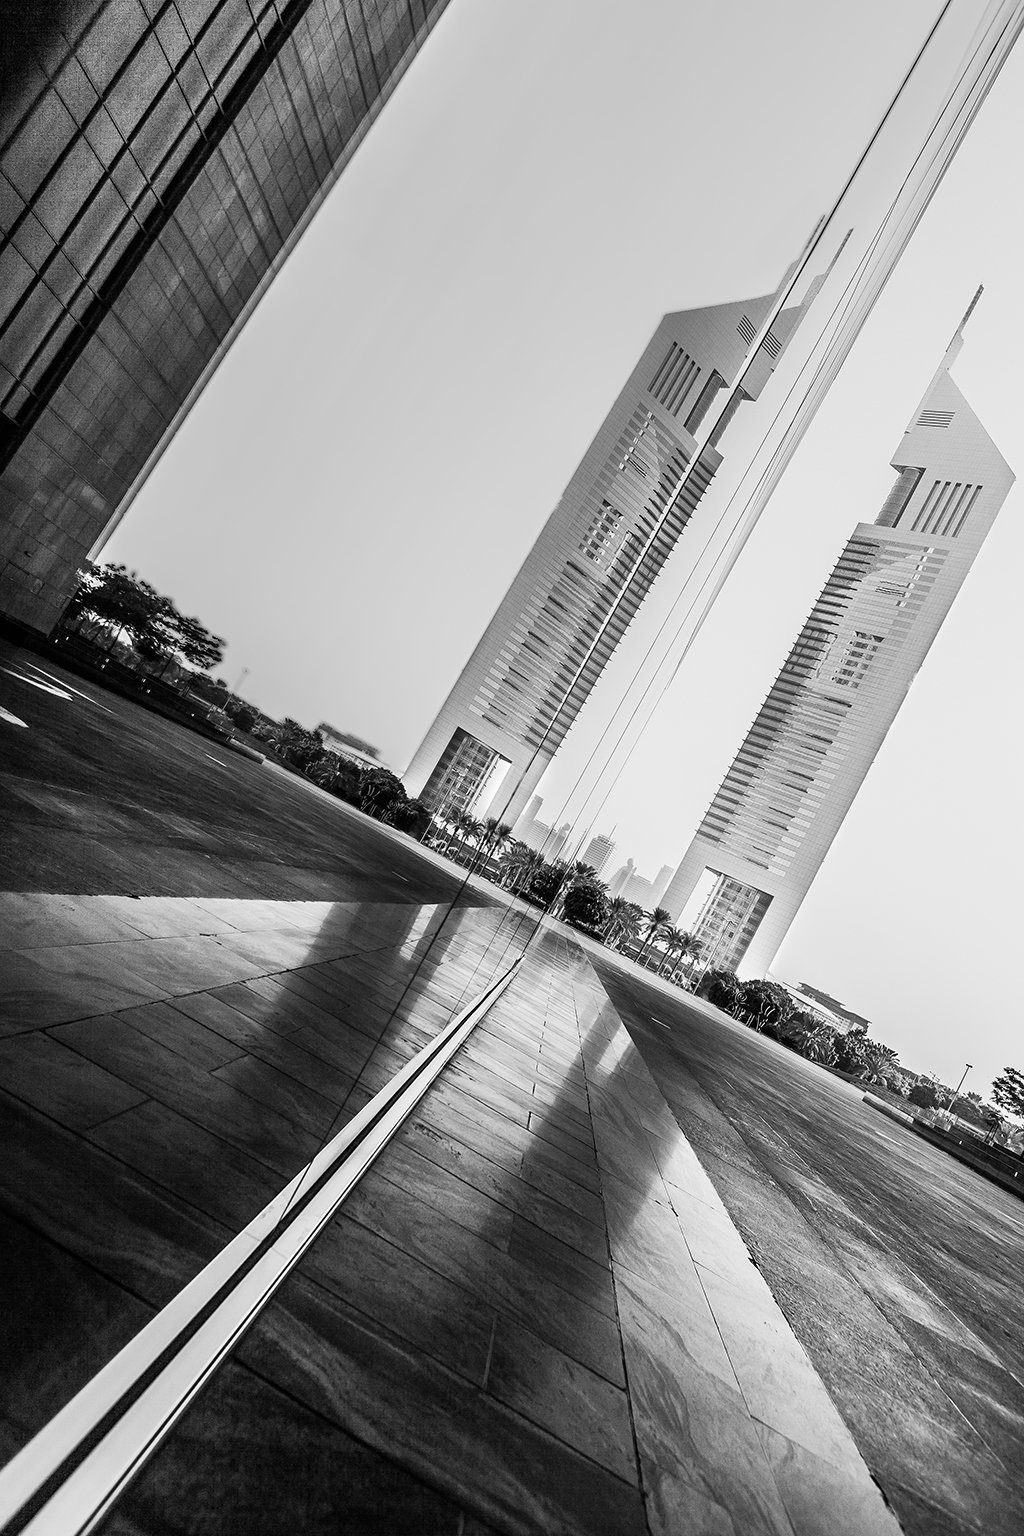 Emirates Tower